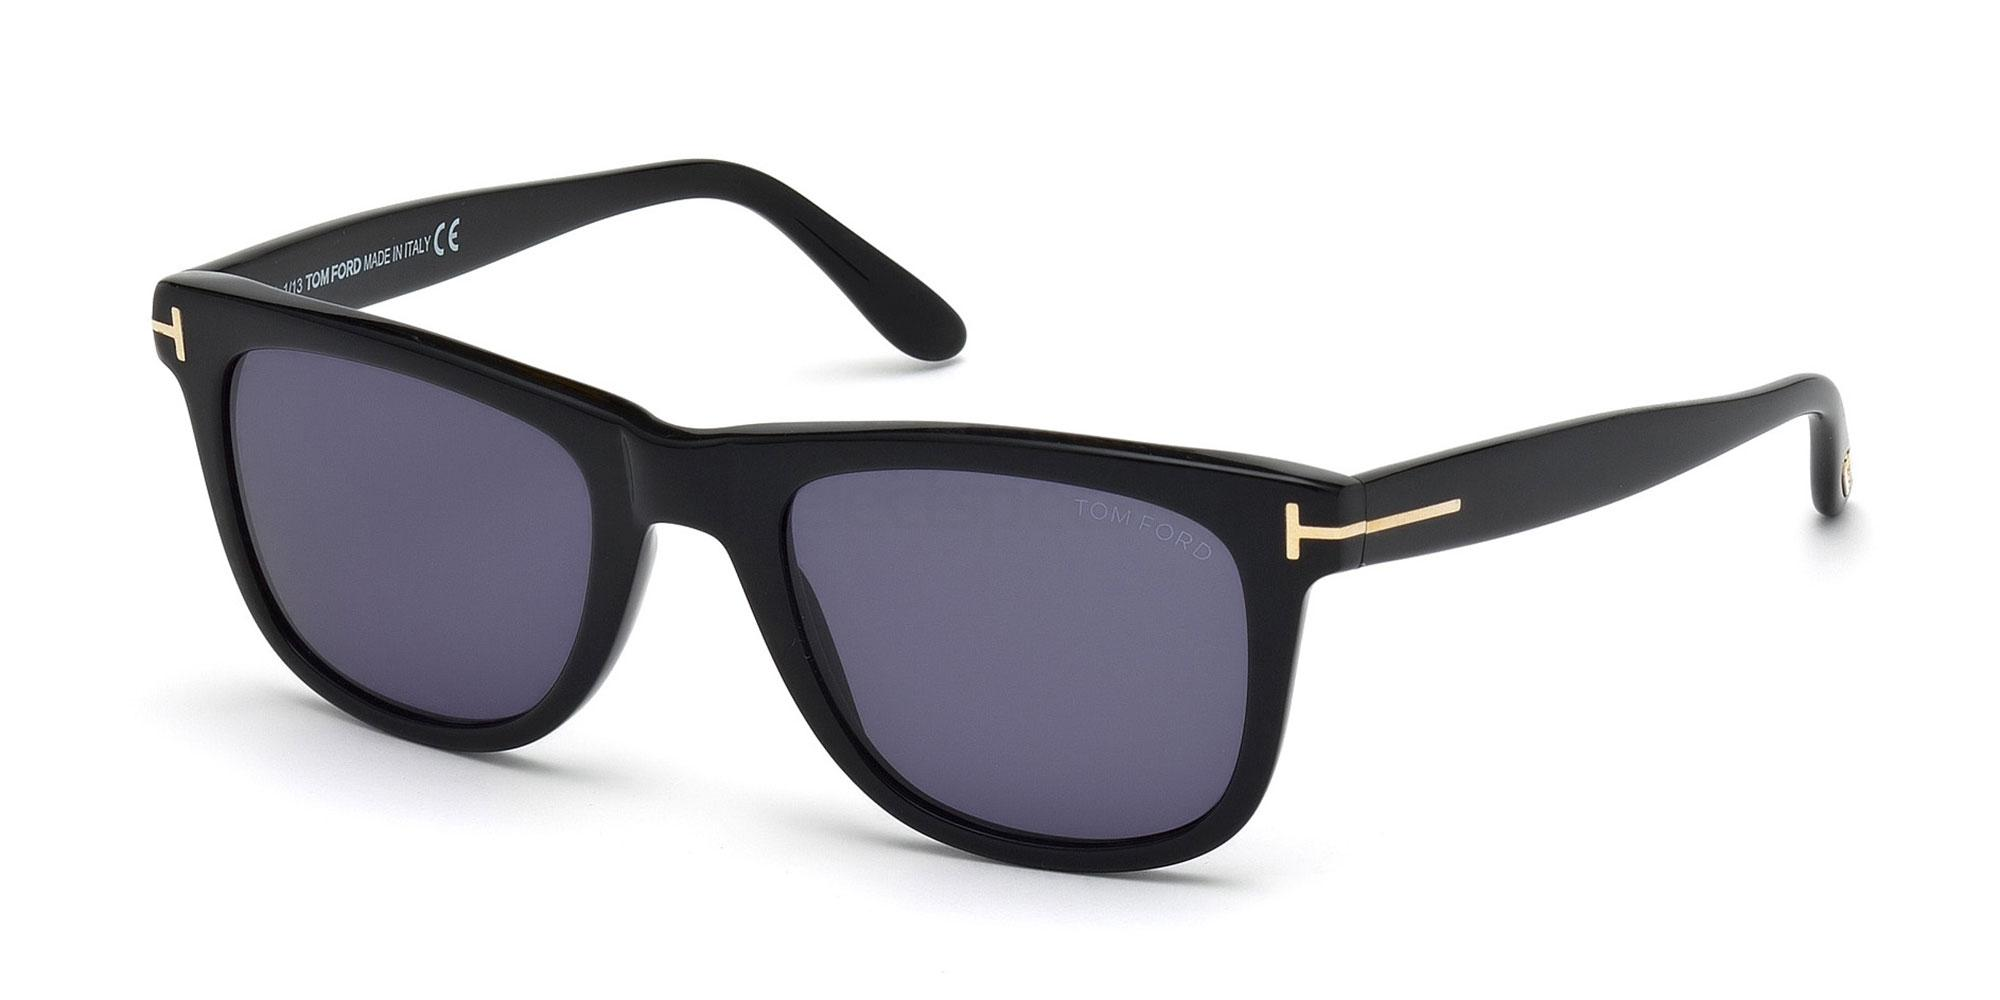 01V FT0336 LEO Sunglasses, Tom Ford